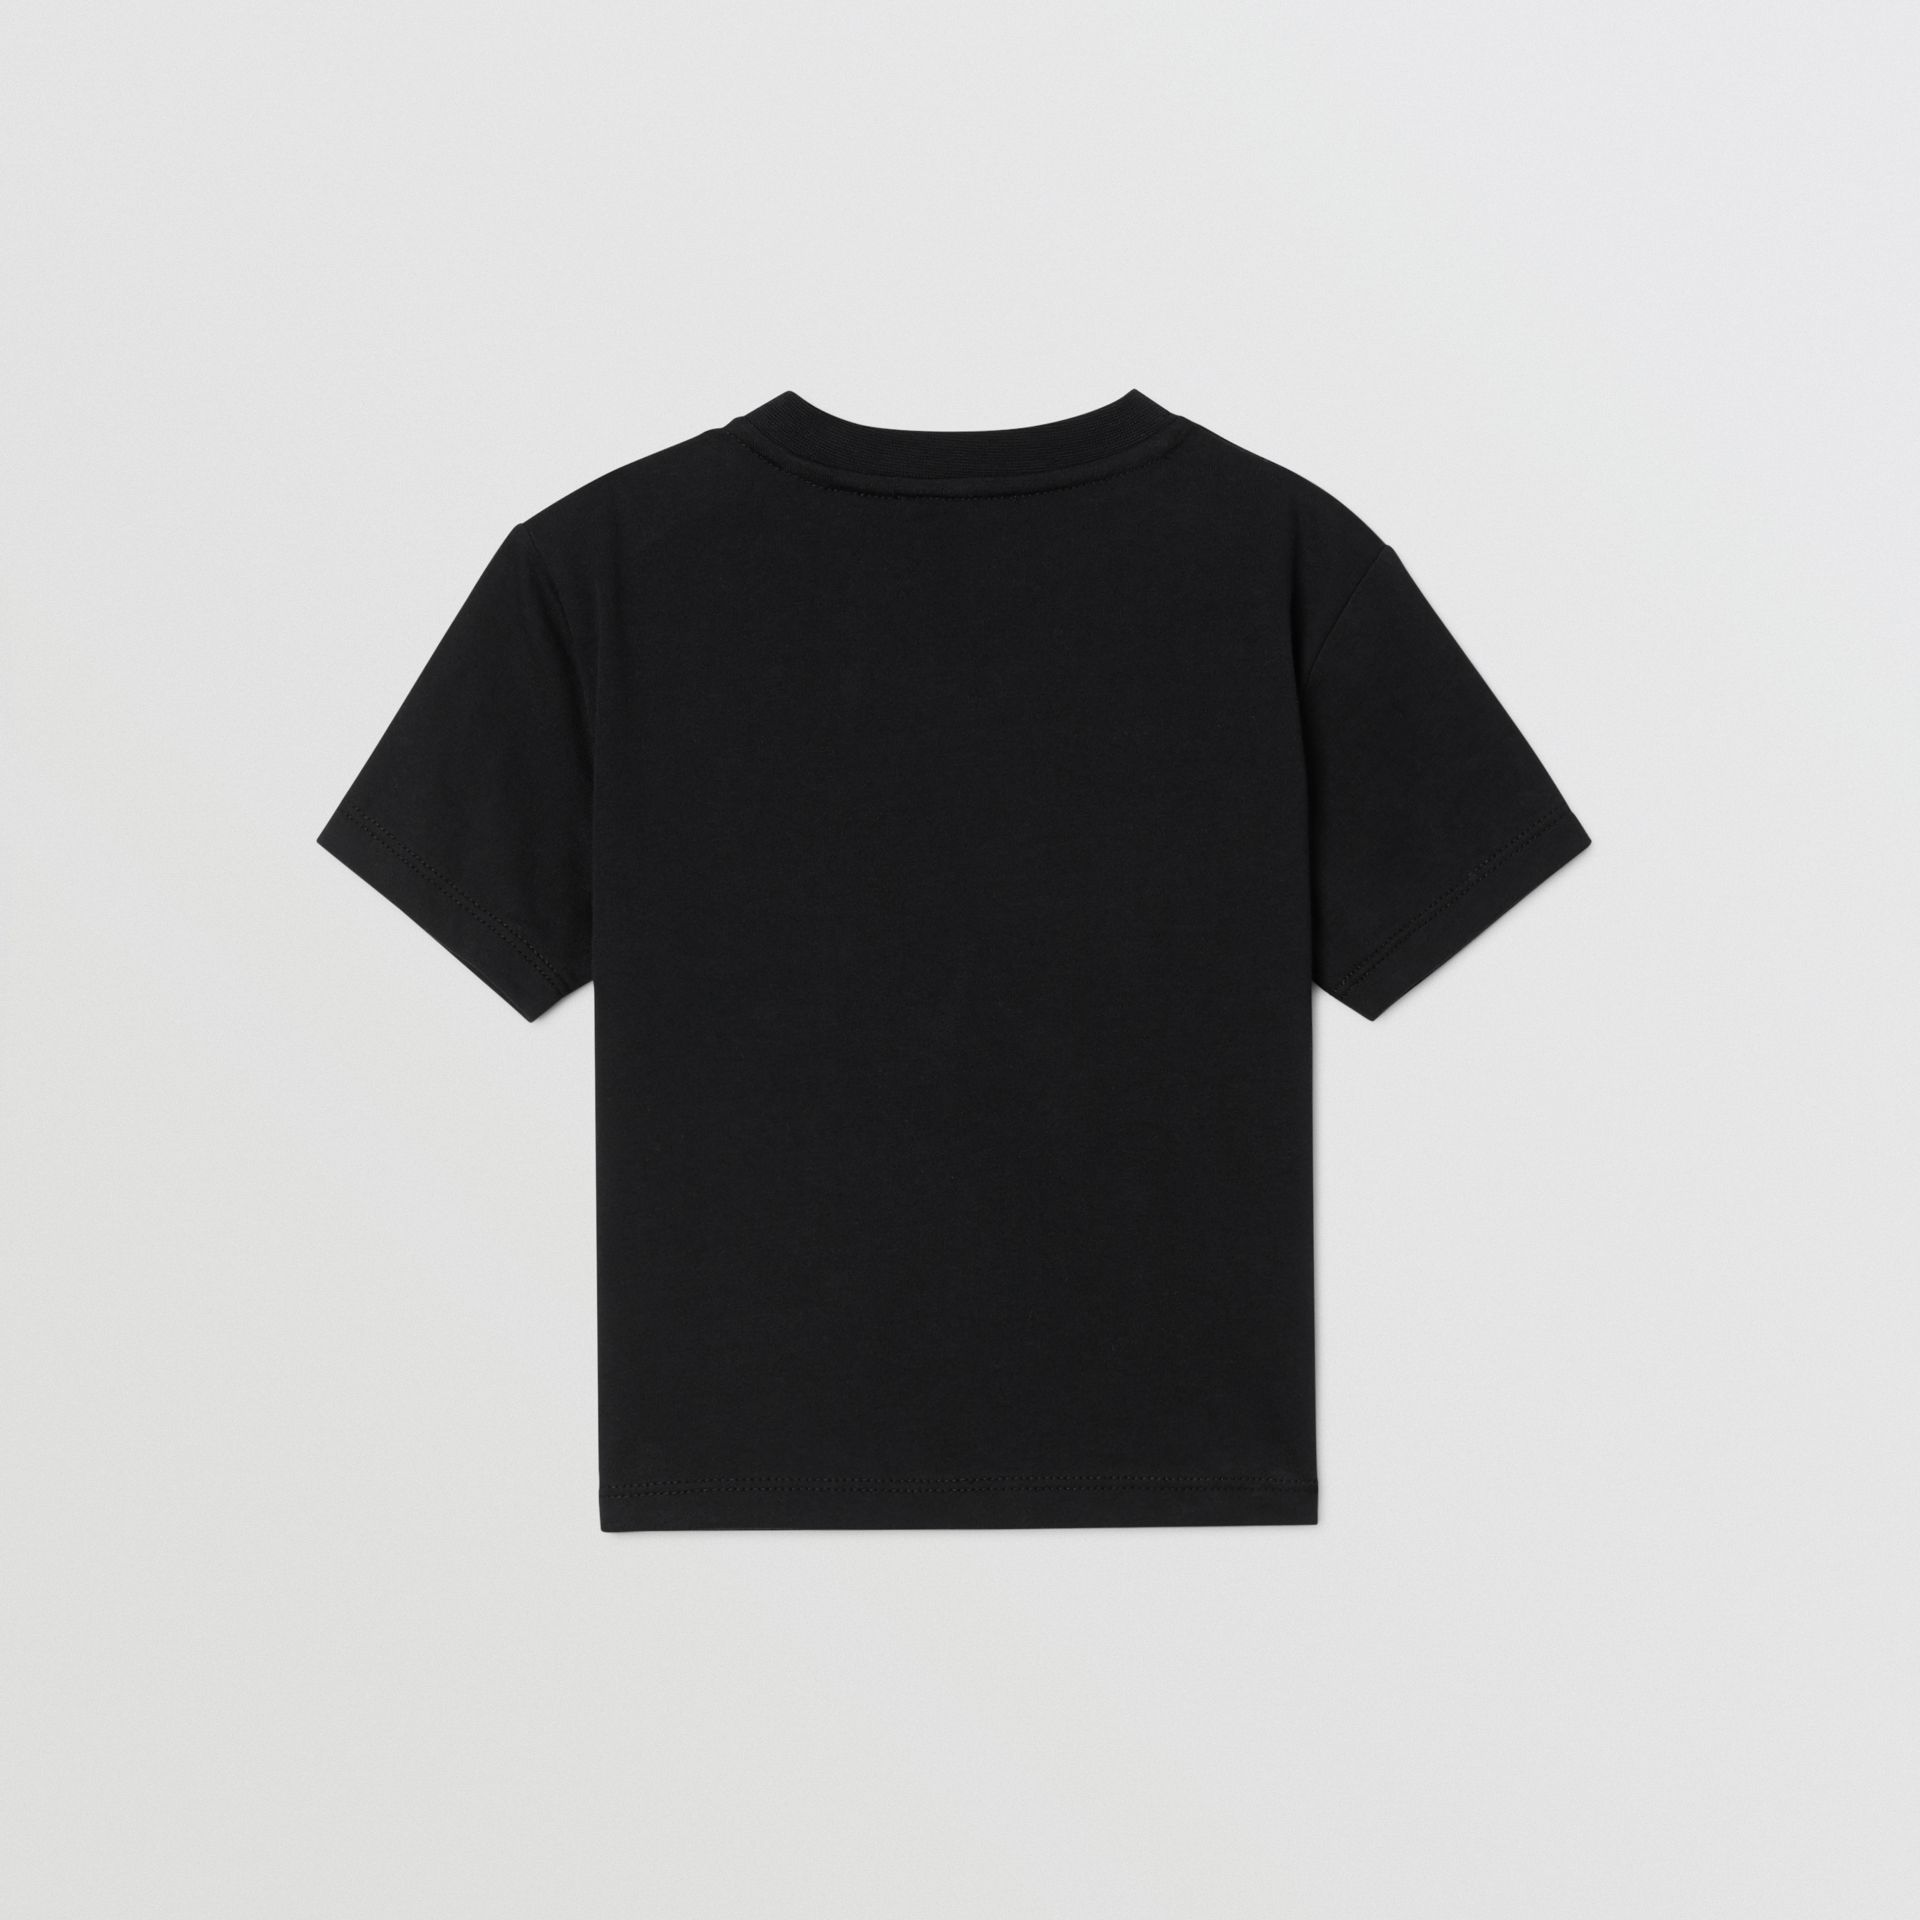 Logo Print Cotton T-shirt in Black - Children | Burberry - gallery image 4